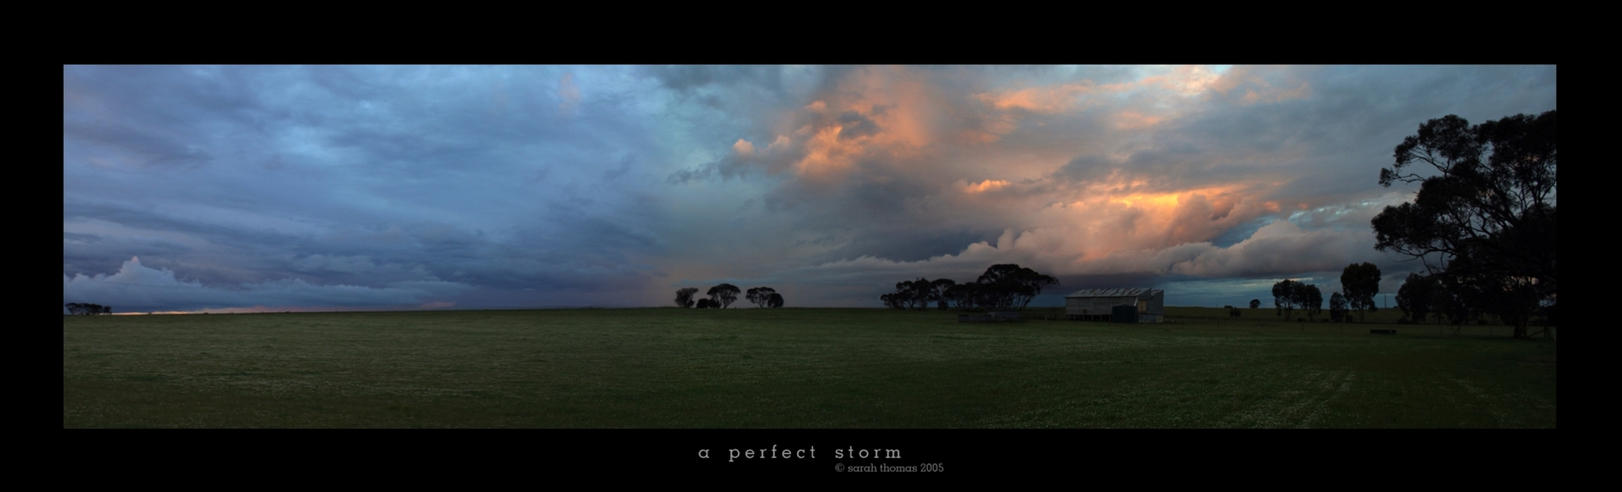 A Perfect Storm by Gregoria